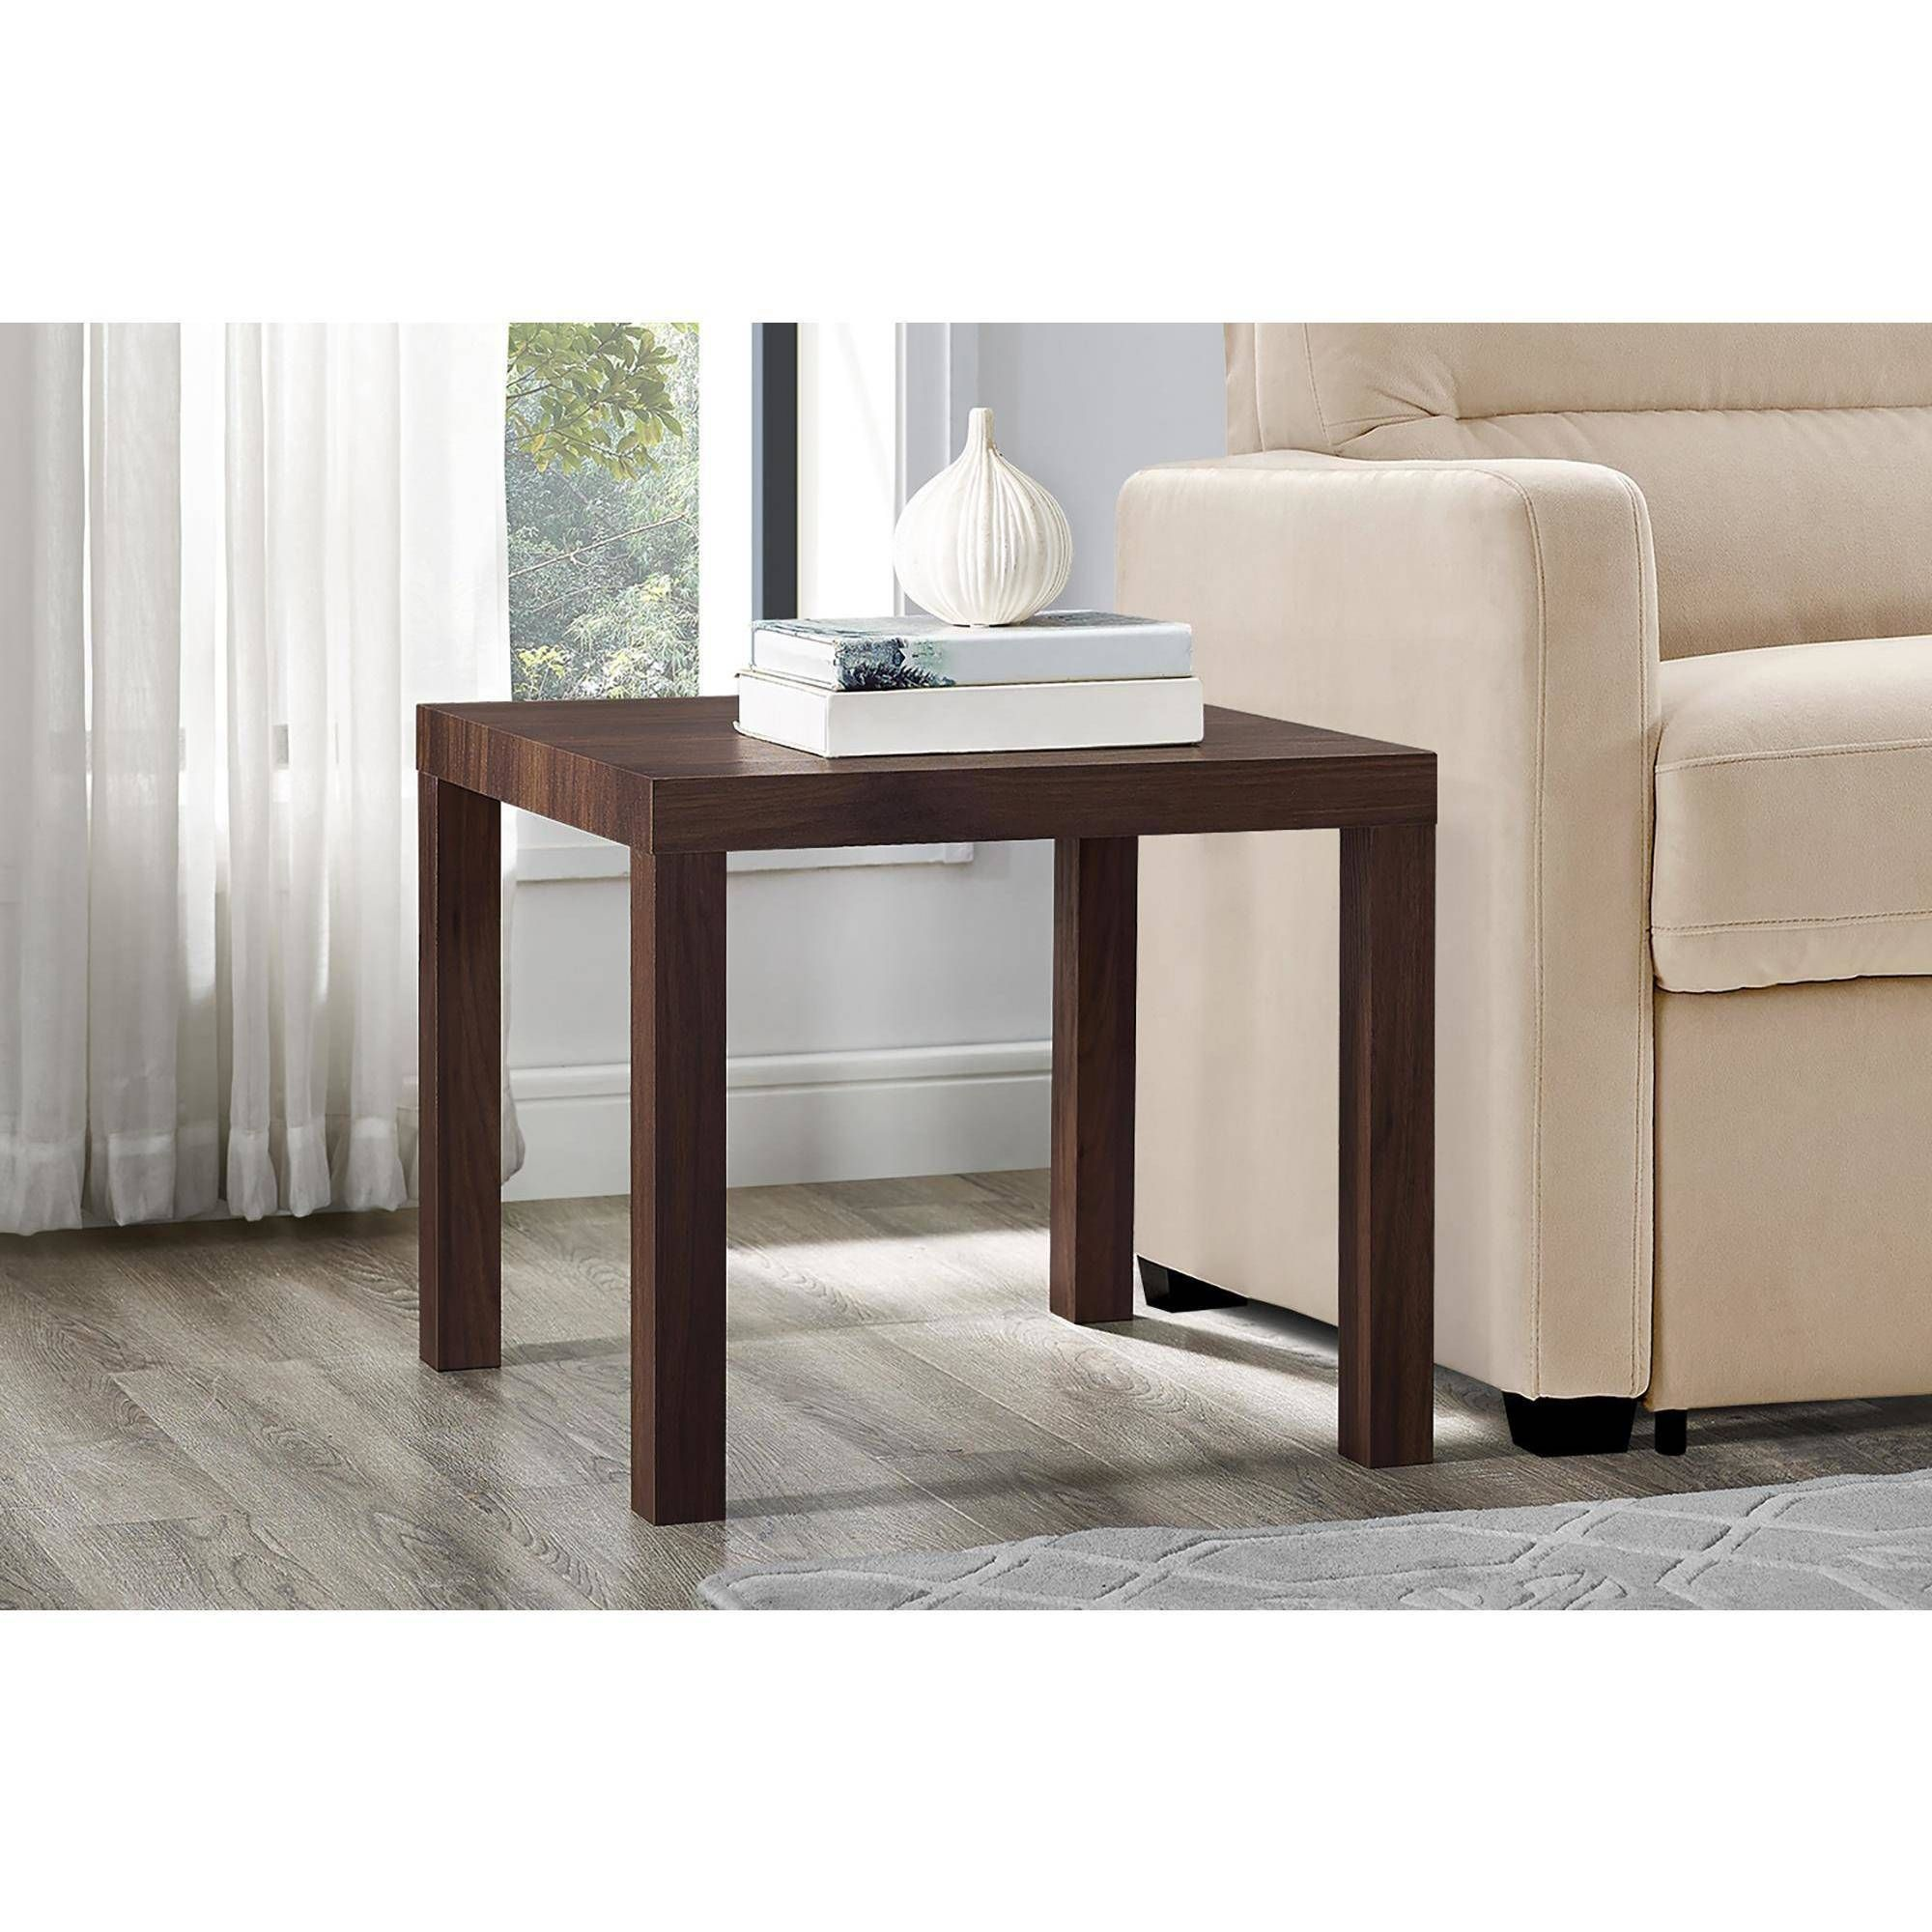 Free 2 Day Shipping On Qualified Orders Over 35 Buy Mainstays Parsons Square End Table Canyon Walnut At Walma In 2020 End Tables Modern End Tables Small Living Room